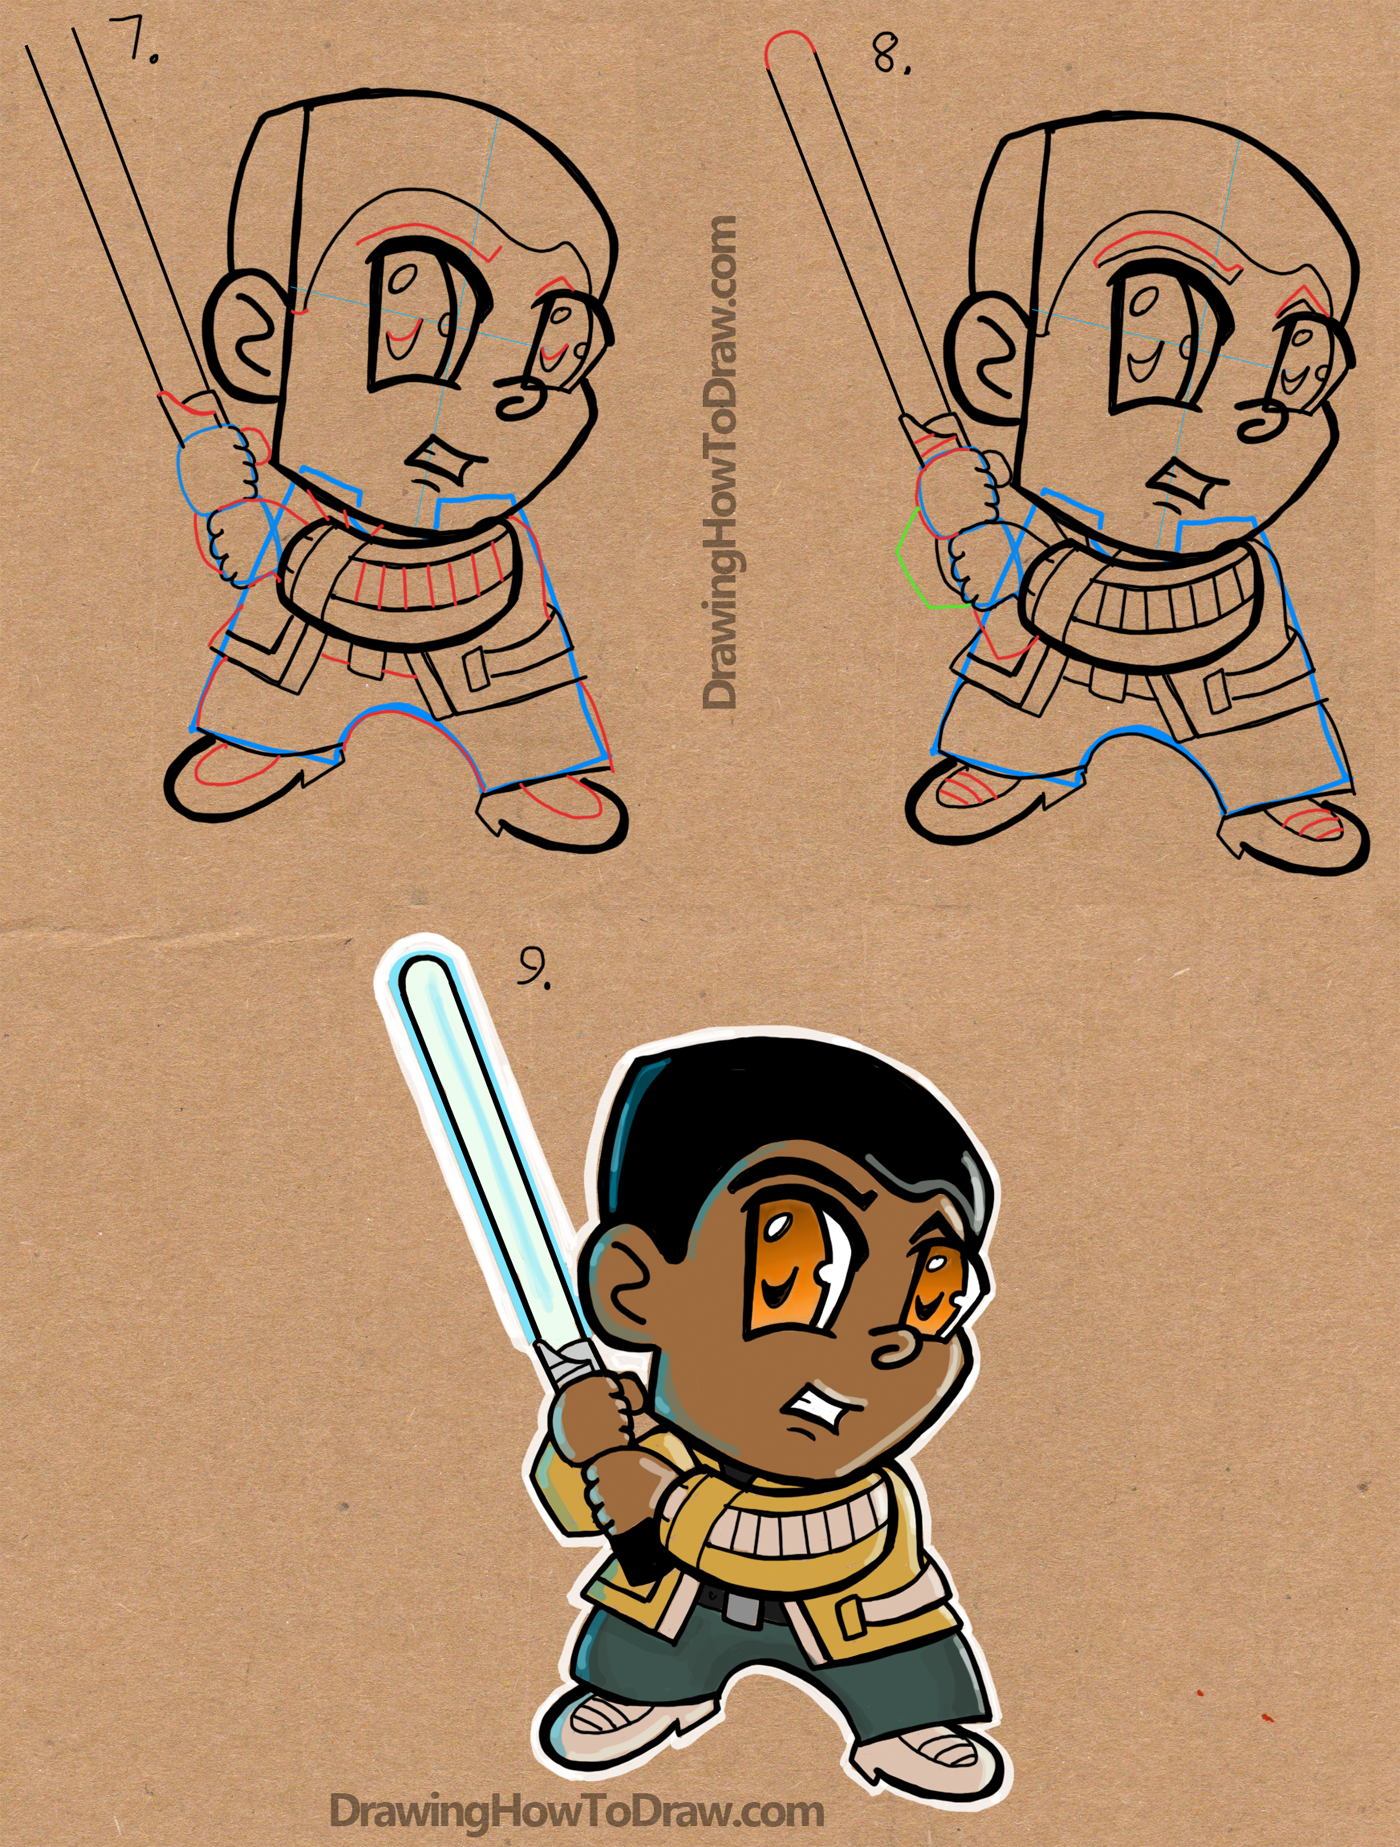 How to Draw Chibi Cartoon Finn from Star Wars The Force Awakens